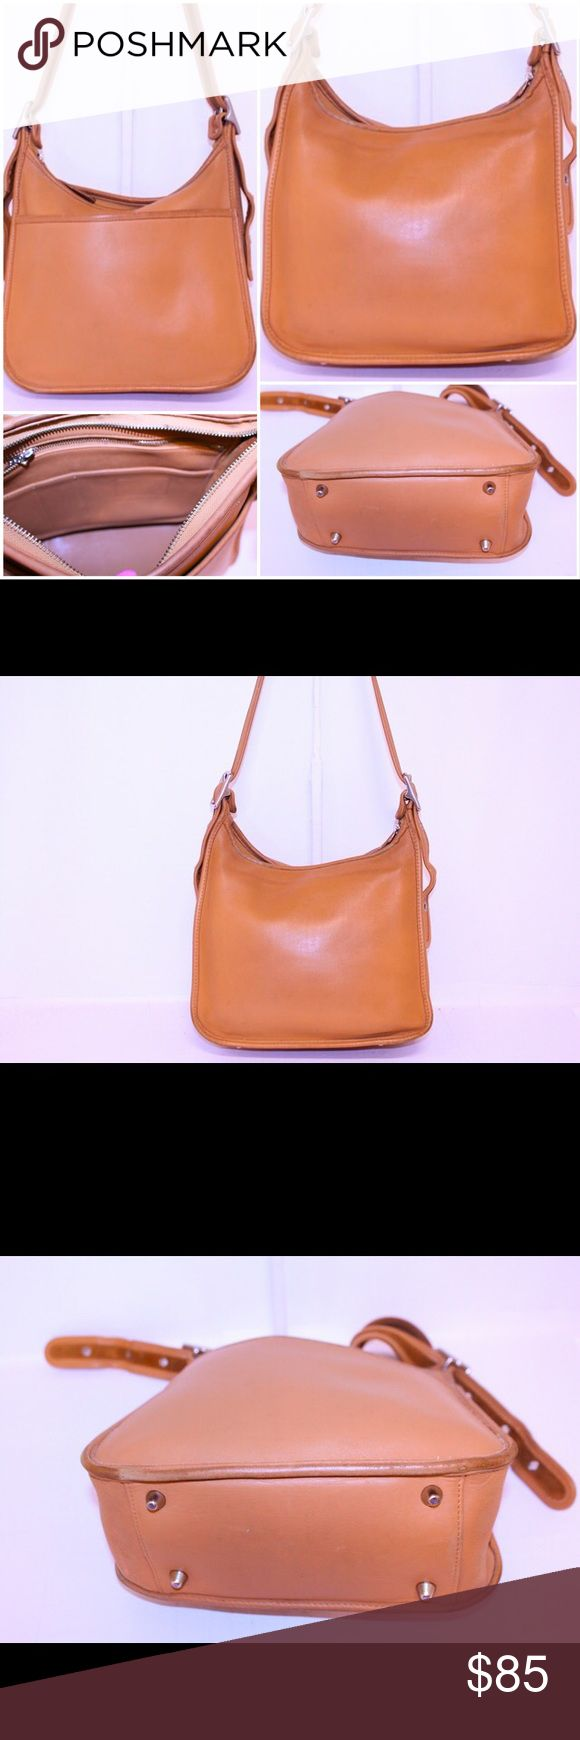 """Coach Vintage Leather Crossbody Handbags Brand: Coach Material: Leather Condition: Used - fair  100% Authentic!!!  Style #:9966  Interior:  Zip Pockets:1  Multi-Function Pockets:2  Exterior:  Strap drop: 10-22""""  Hardware:Silver tone  Closure:Zip  Exterior Pockets:1  Hang tag:1  Please observe pictures thoroughly since its a big part of the description. These are previously carried bags unless otherwise noted.  Some wear. Coach Bags Shoulder Bags"""